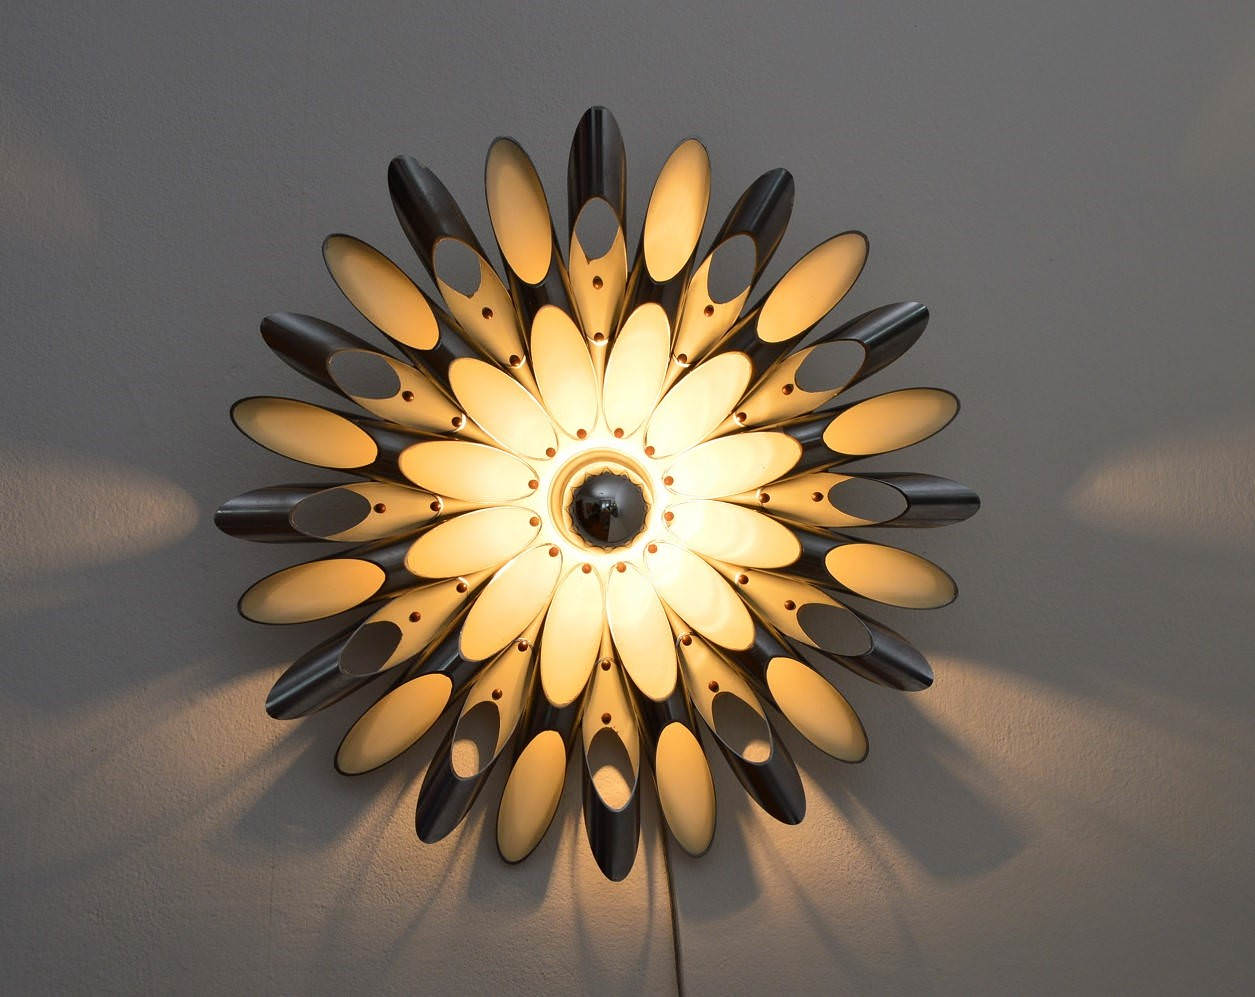 Design Space Age Wall Sconce - wall-lights-sconces